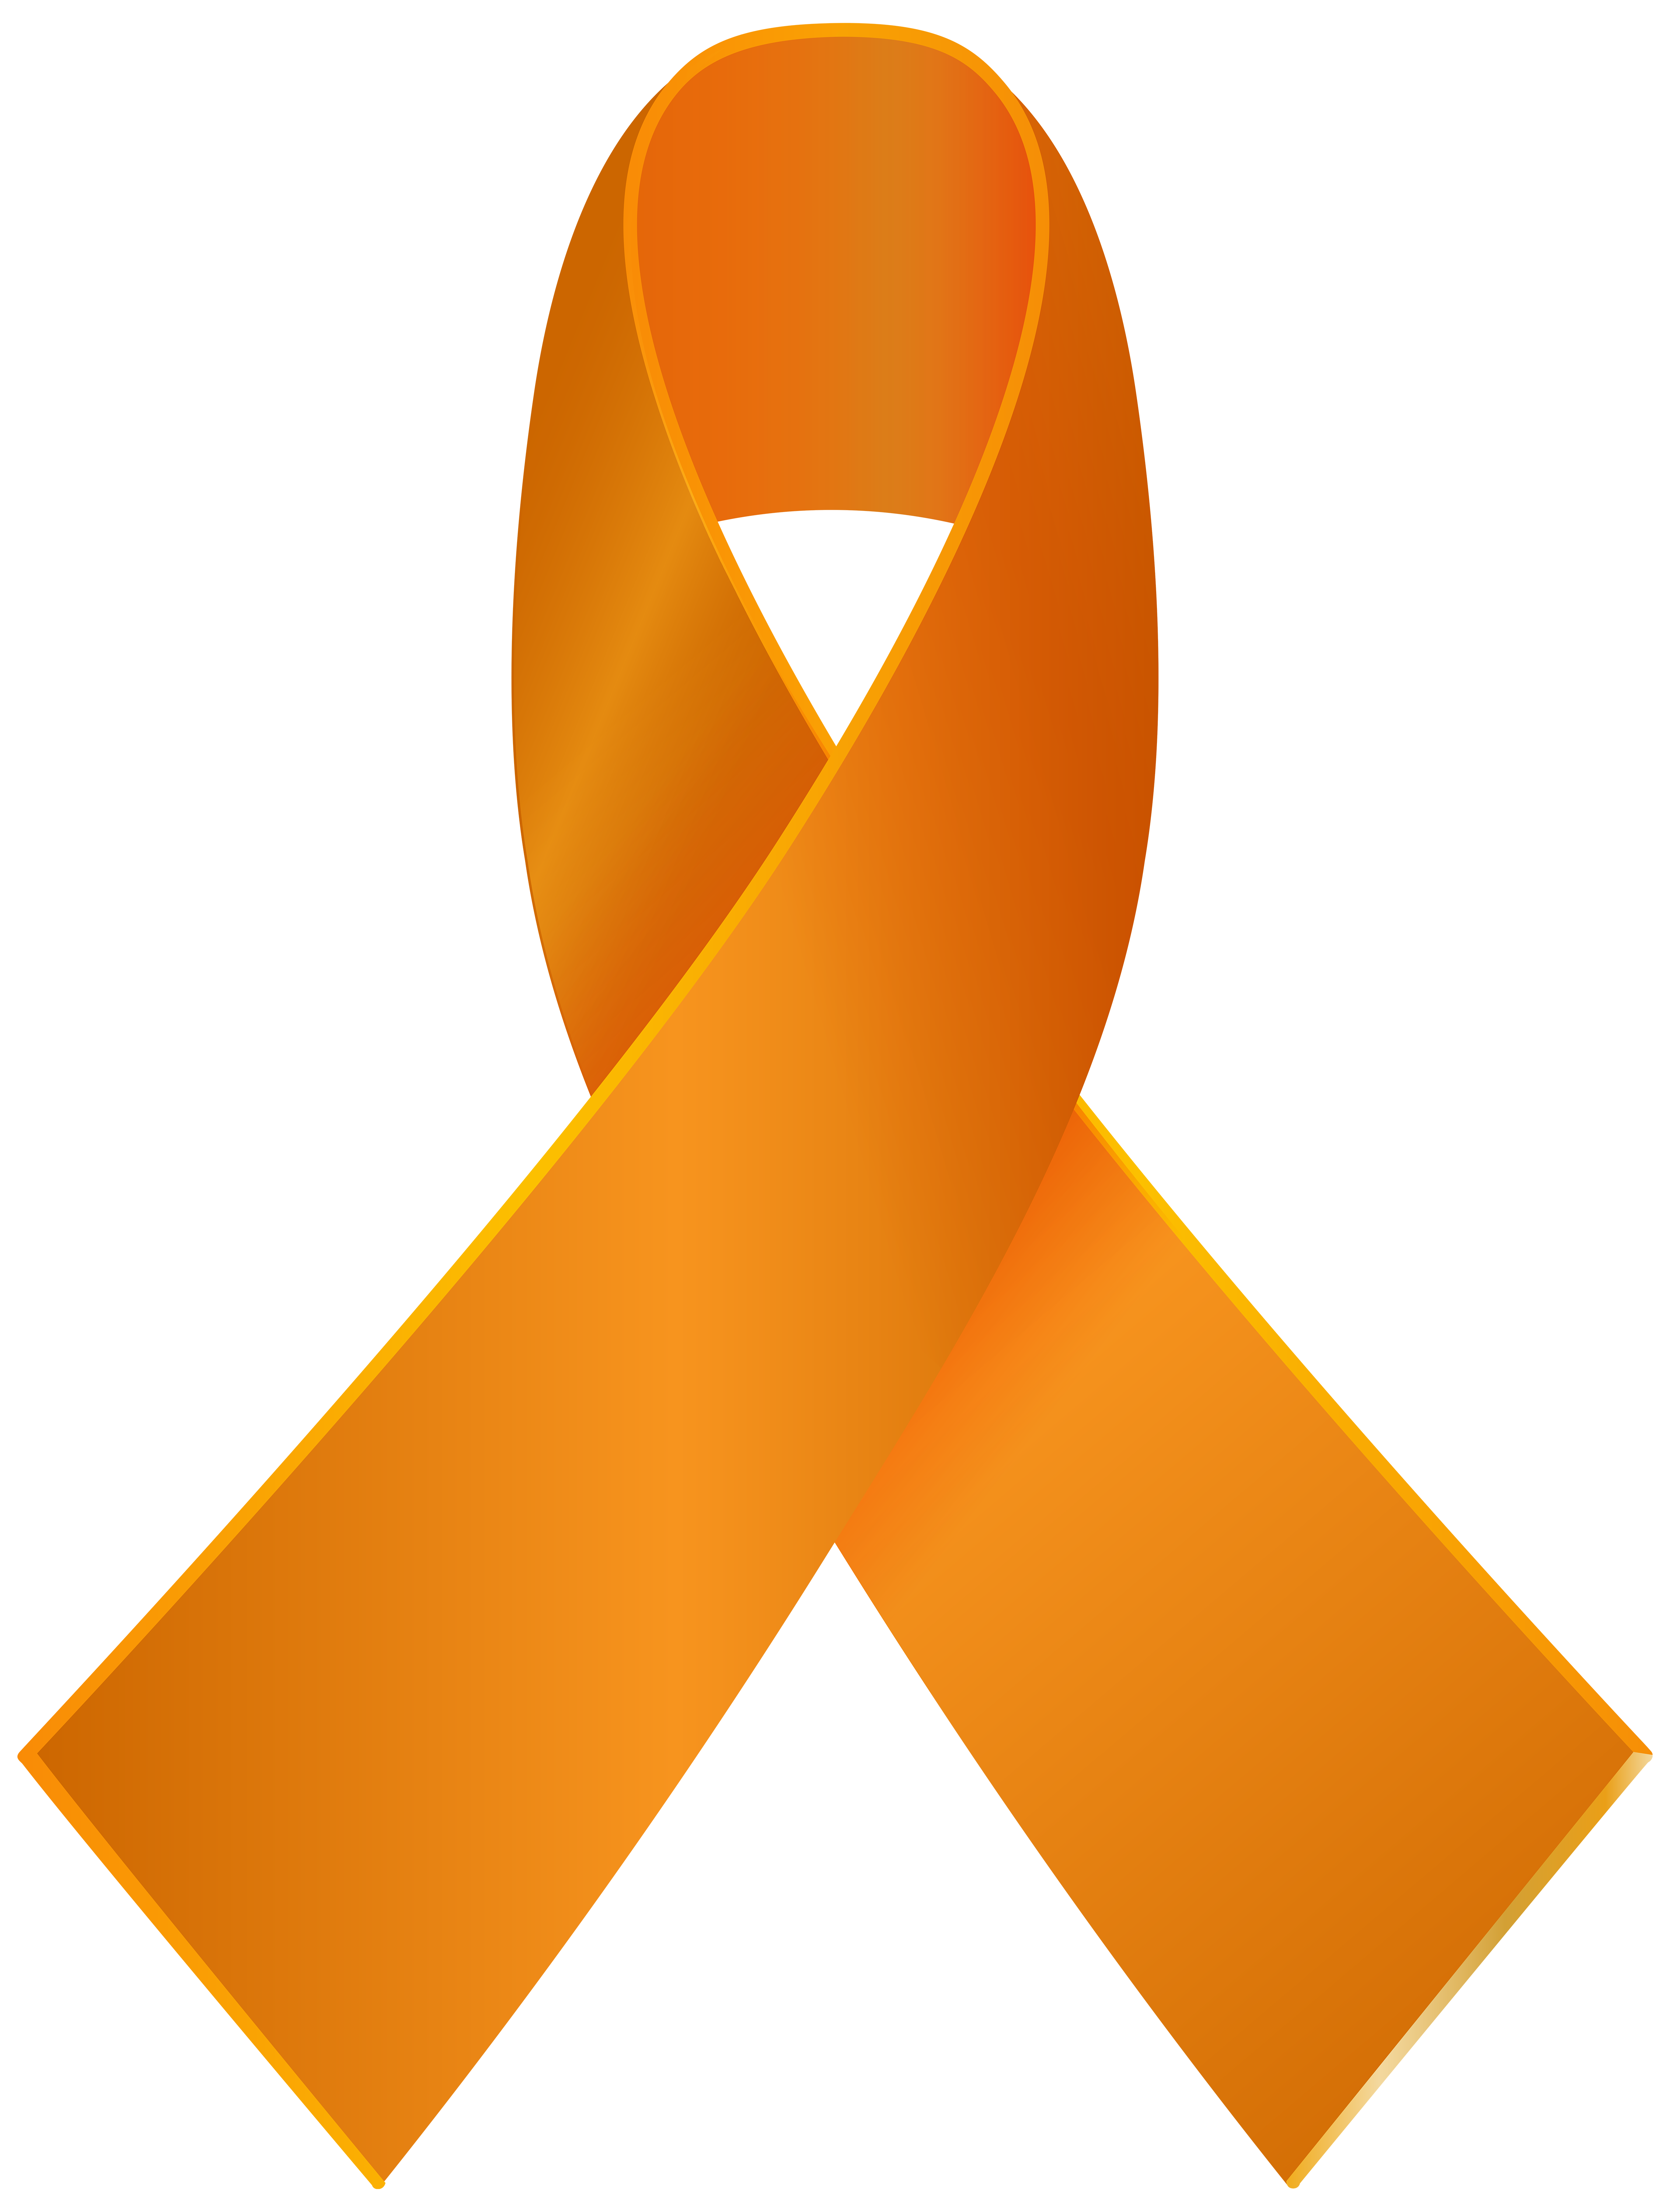 Awareness ribbon png clip. Orange clipart clouds